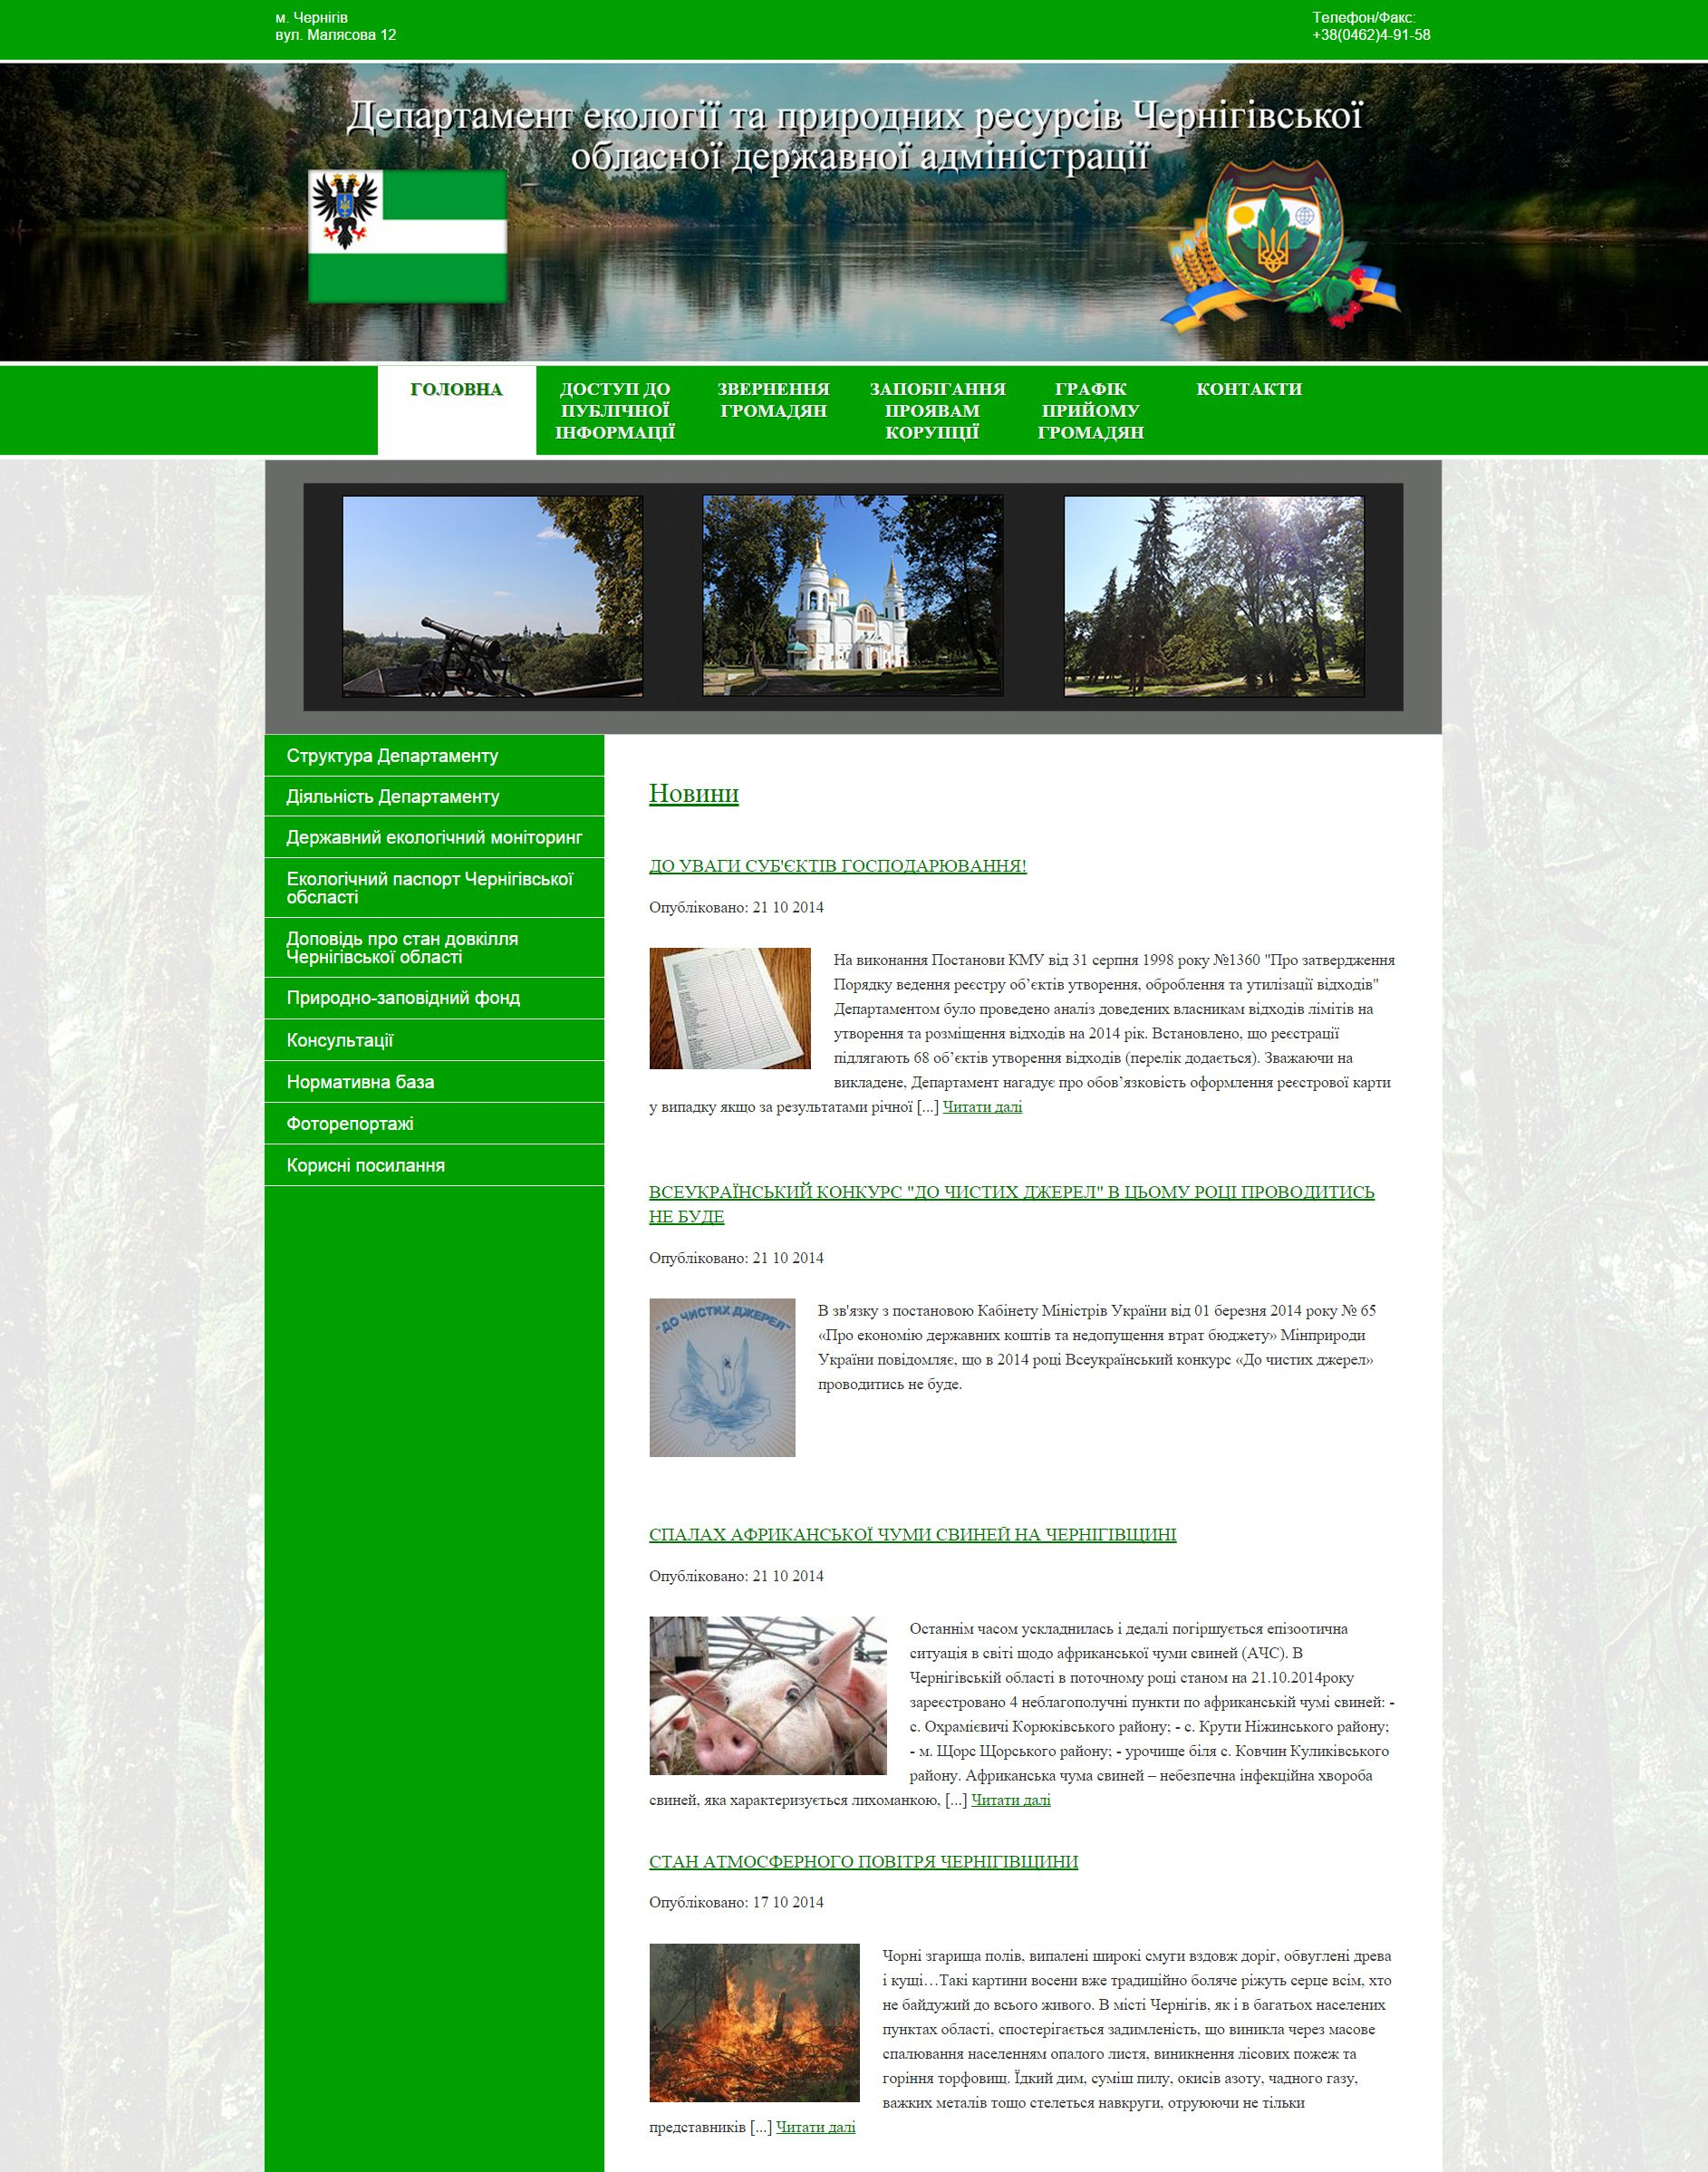 Website for the Department of ecology and natural resources of the Chernihiv regional state administration